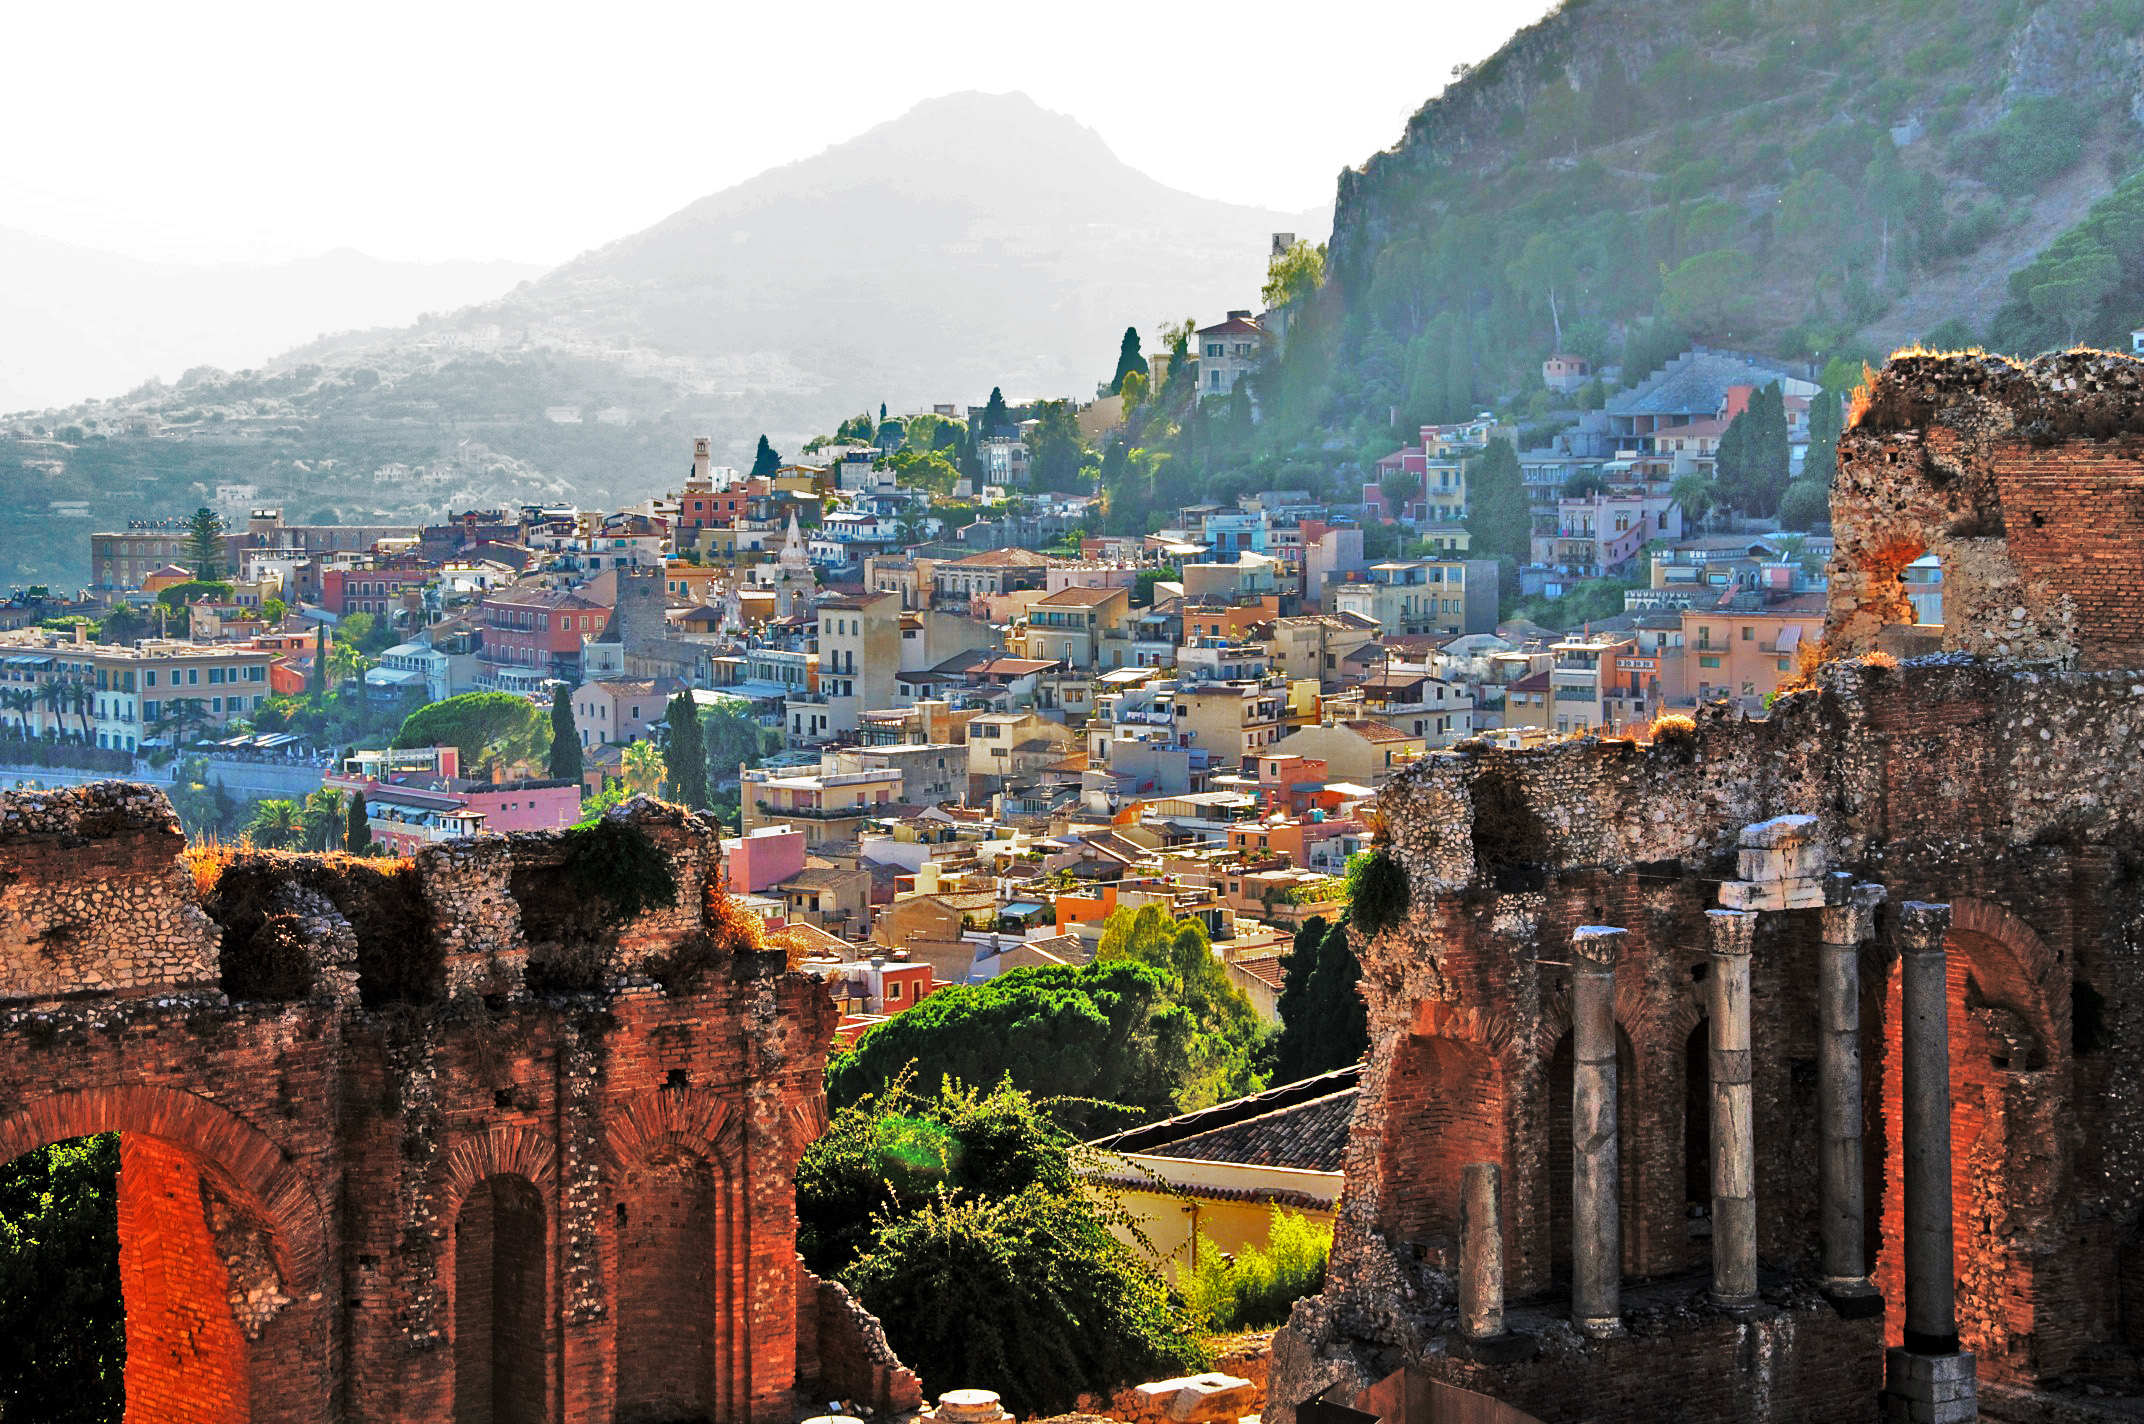 The small coastal city of Taormina, where me and my friends will be staying when we visit Sicily this summer. Image credit:    Luca Volpi   /   Flickr